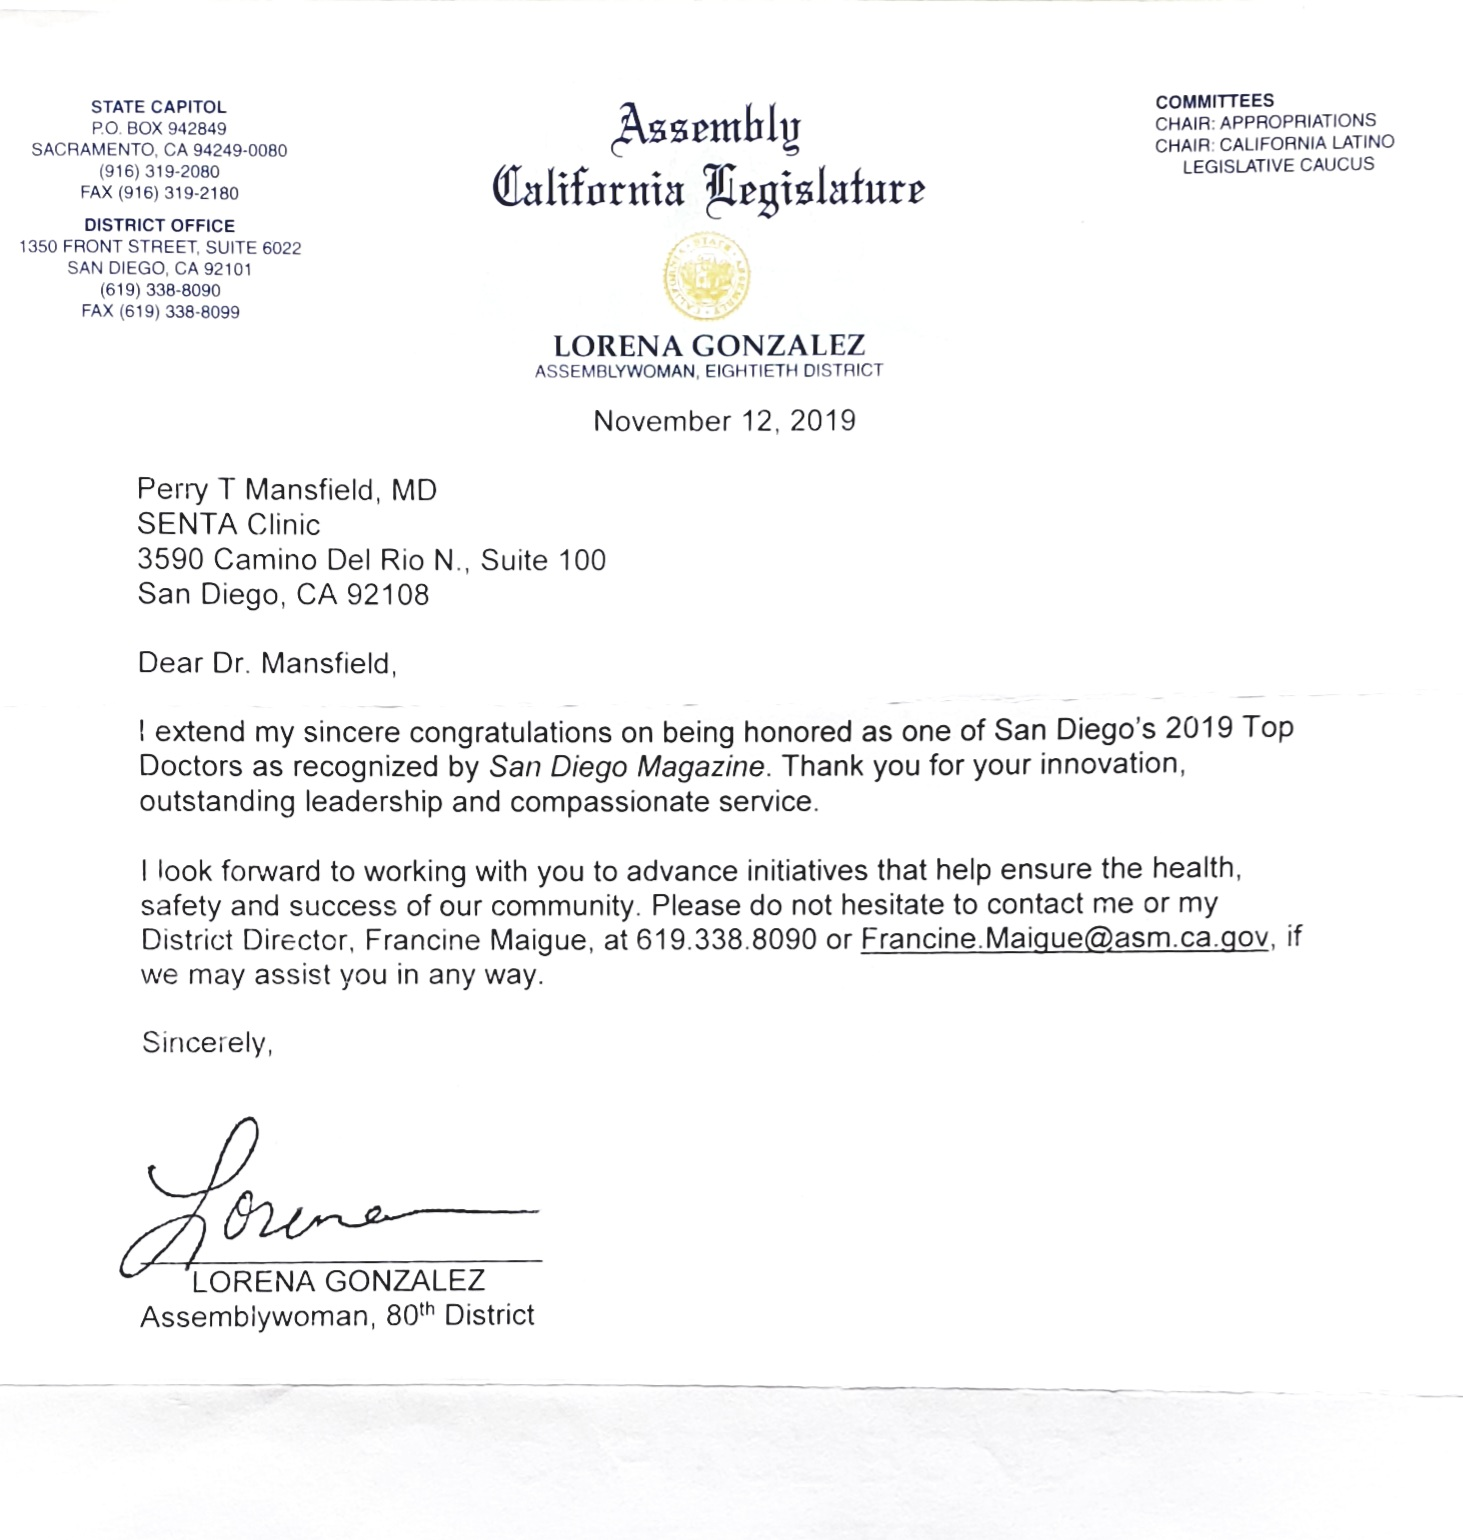 California Legislature Letter from Assemblywoman Lorena Gonzalez